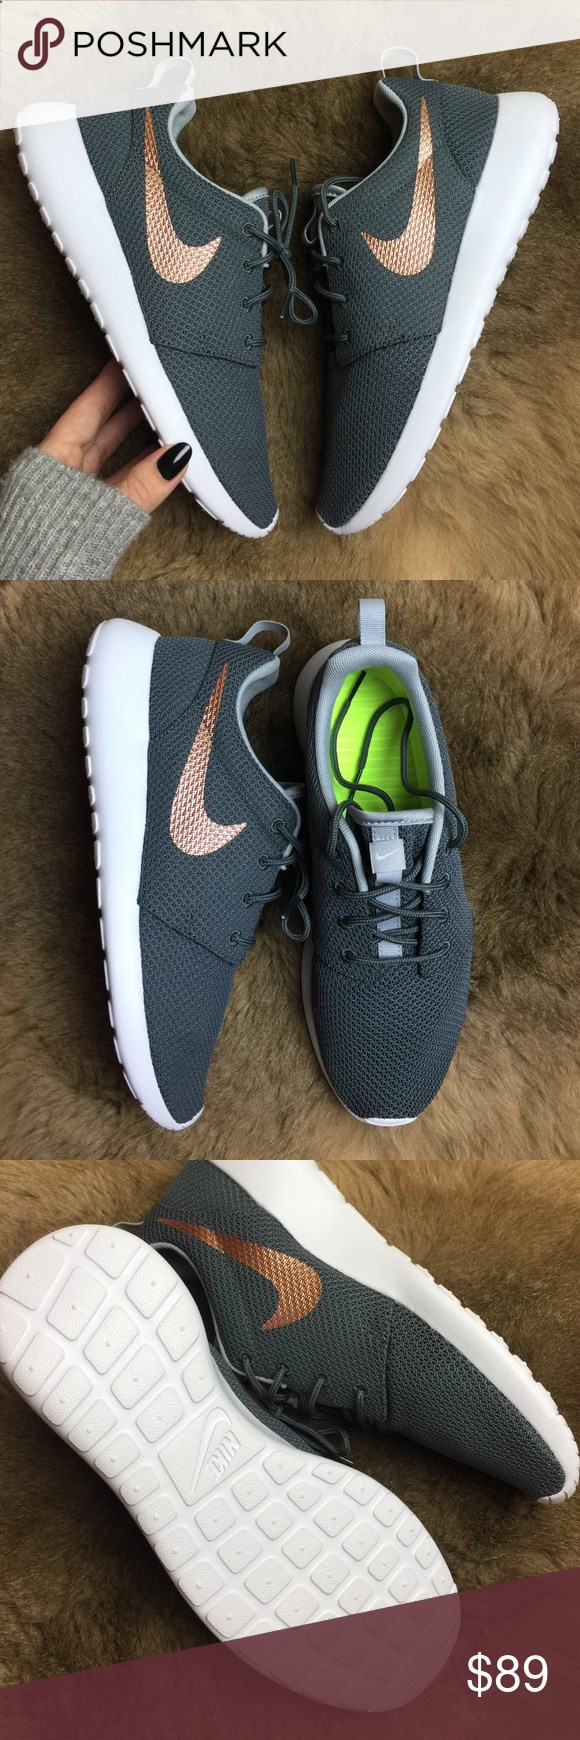 65178c99c243 NWT Nike ID custom rose gold swoosh Brand new no box Nike id roshe custom  grey wolf color with rose gold swoosh! No trades!price is firm!